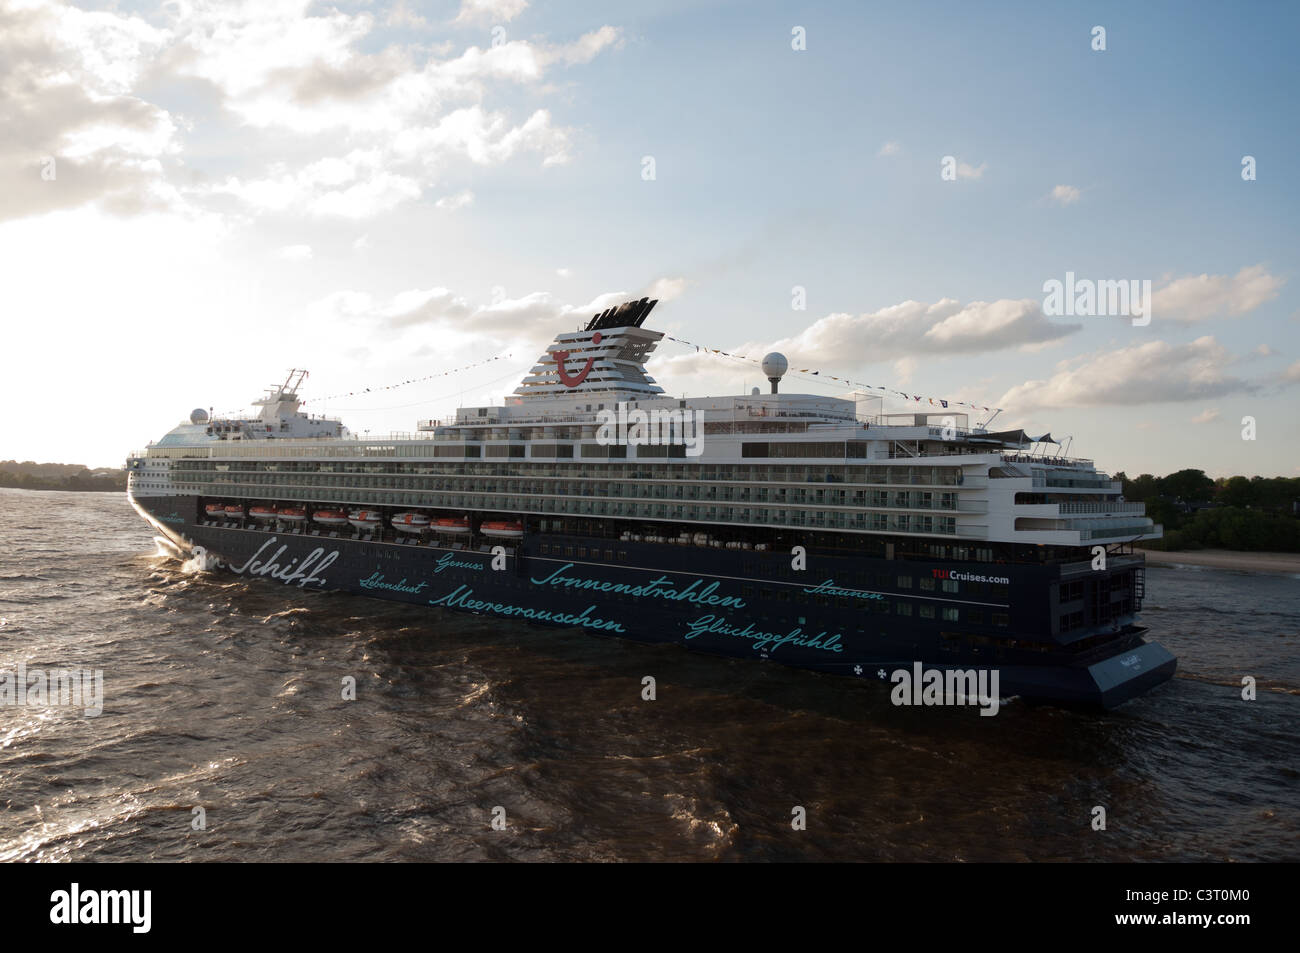 HAMBURG, GERMANY - May 14, 2011: Maiden voyage of 'Mein Schiff 2', the new luxury cruise ship by Tui Cruises - Stock Image